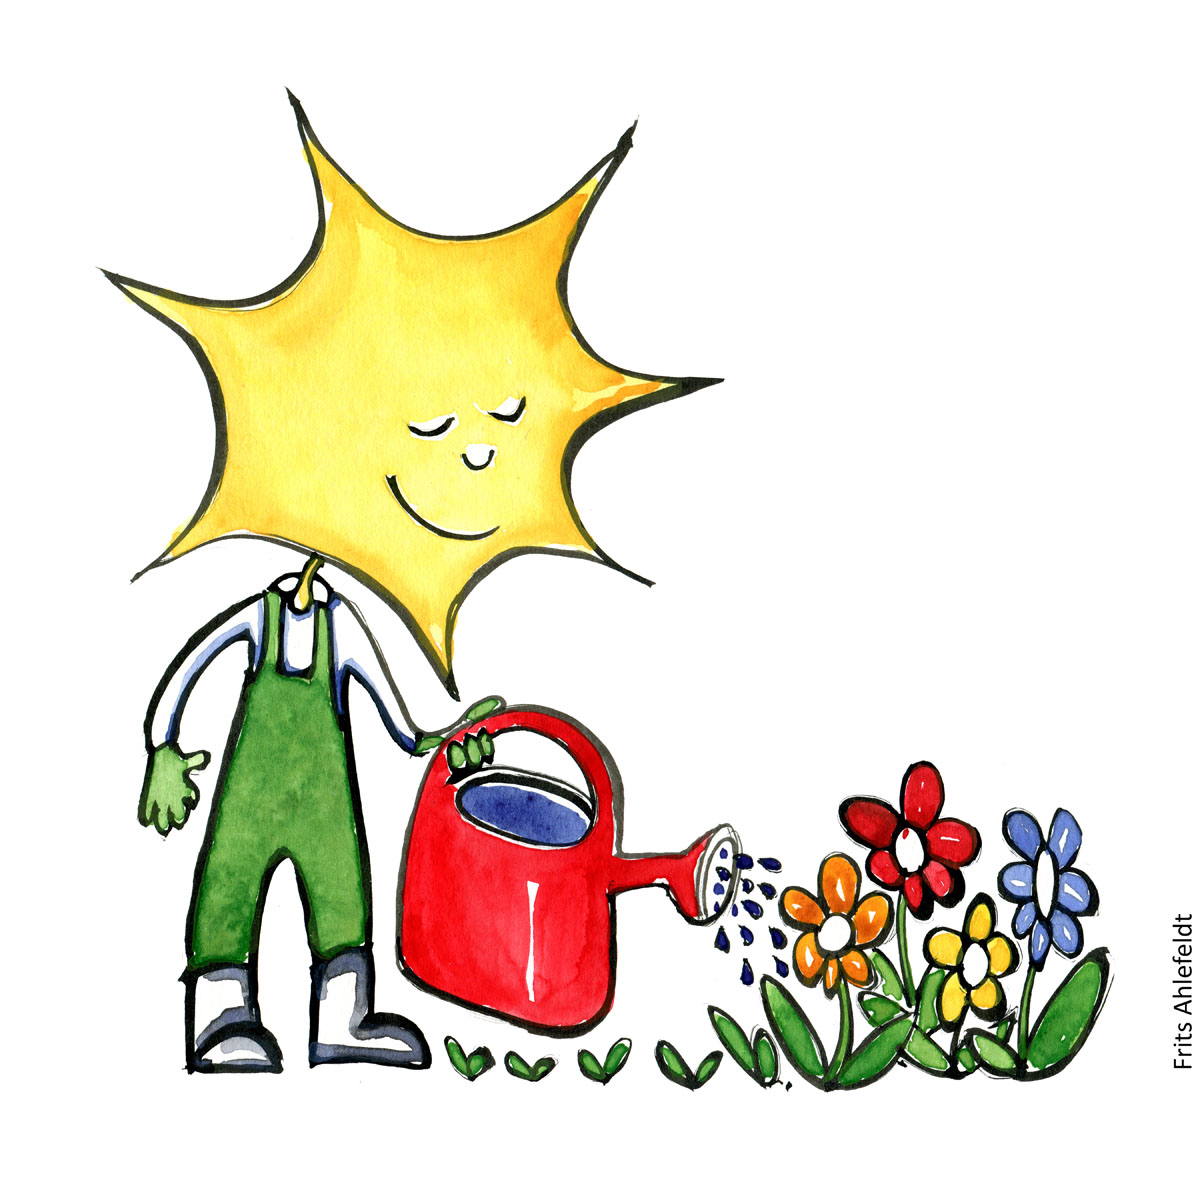 Drawing of a gardener with the sun as head watering flowers. Be the change Psychology illustration by Frits Ahlefeldt